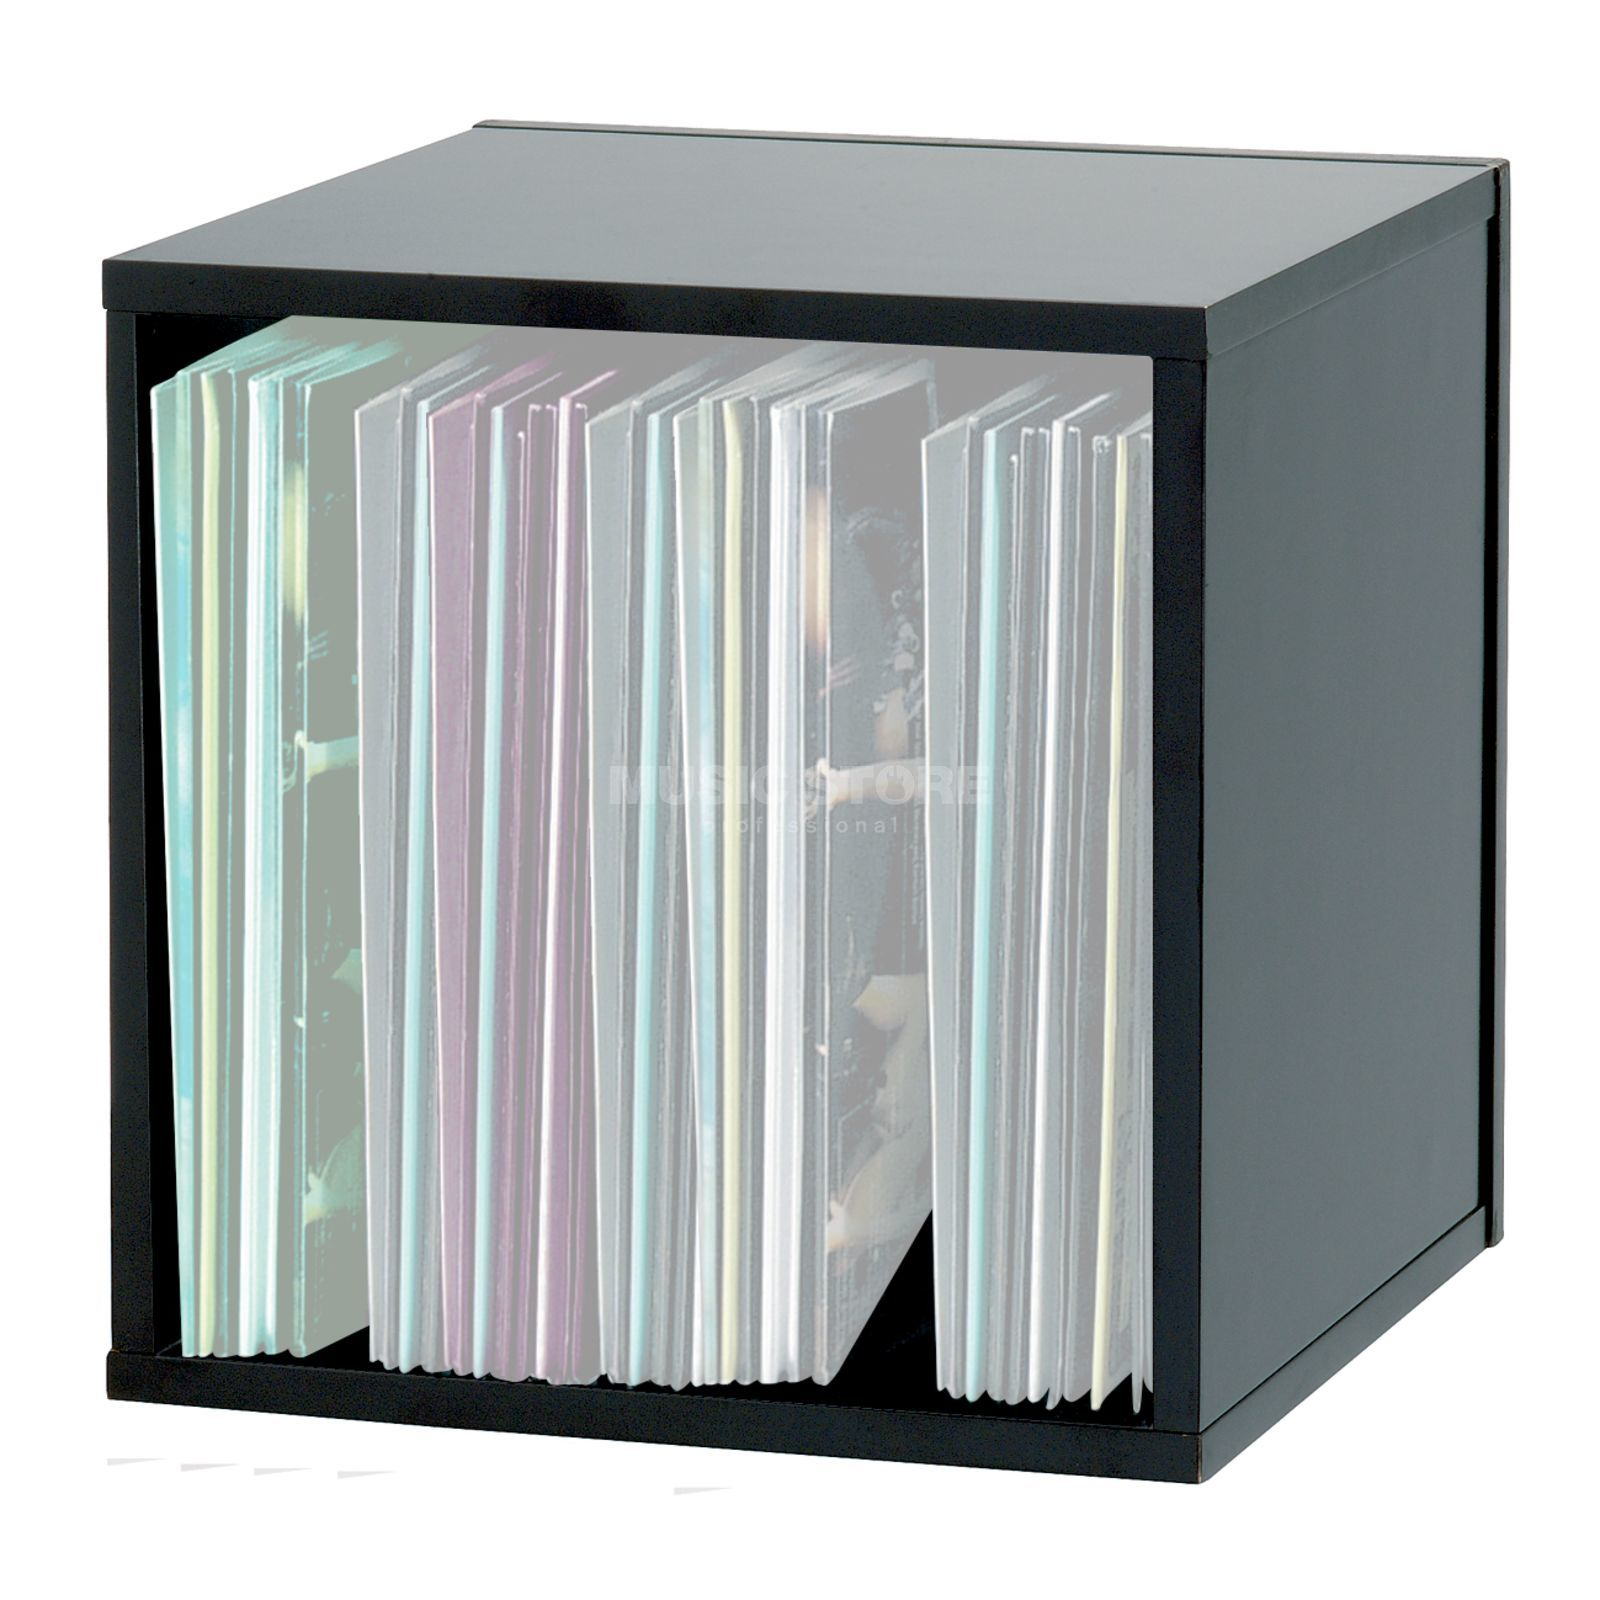 Glorious Record Box 110 Black MDF Record Box, 110 Capacity Produktbillede